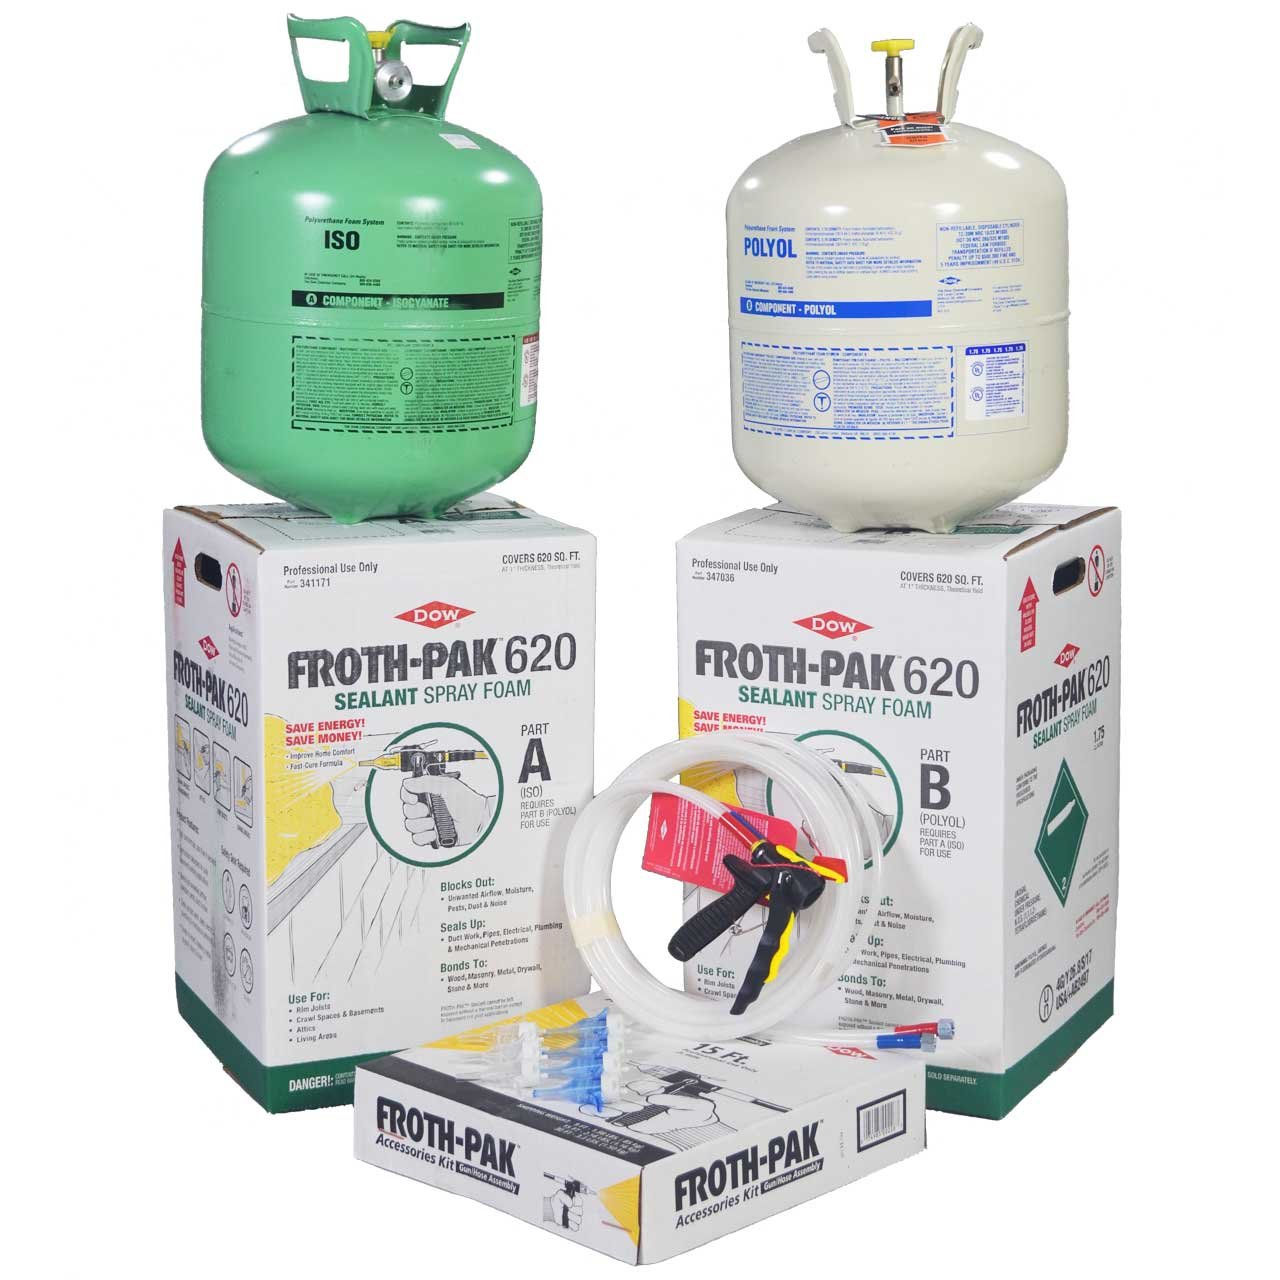 DOW FROTH-PAK 620 Spray Foam Sealant Insulation Kit With 30' Hose, Closed Cell Foam, Covers 620 sq ft